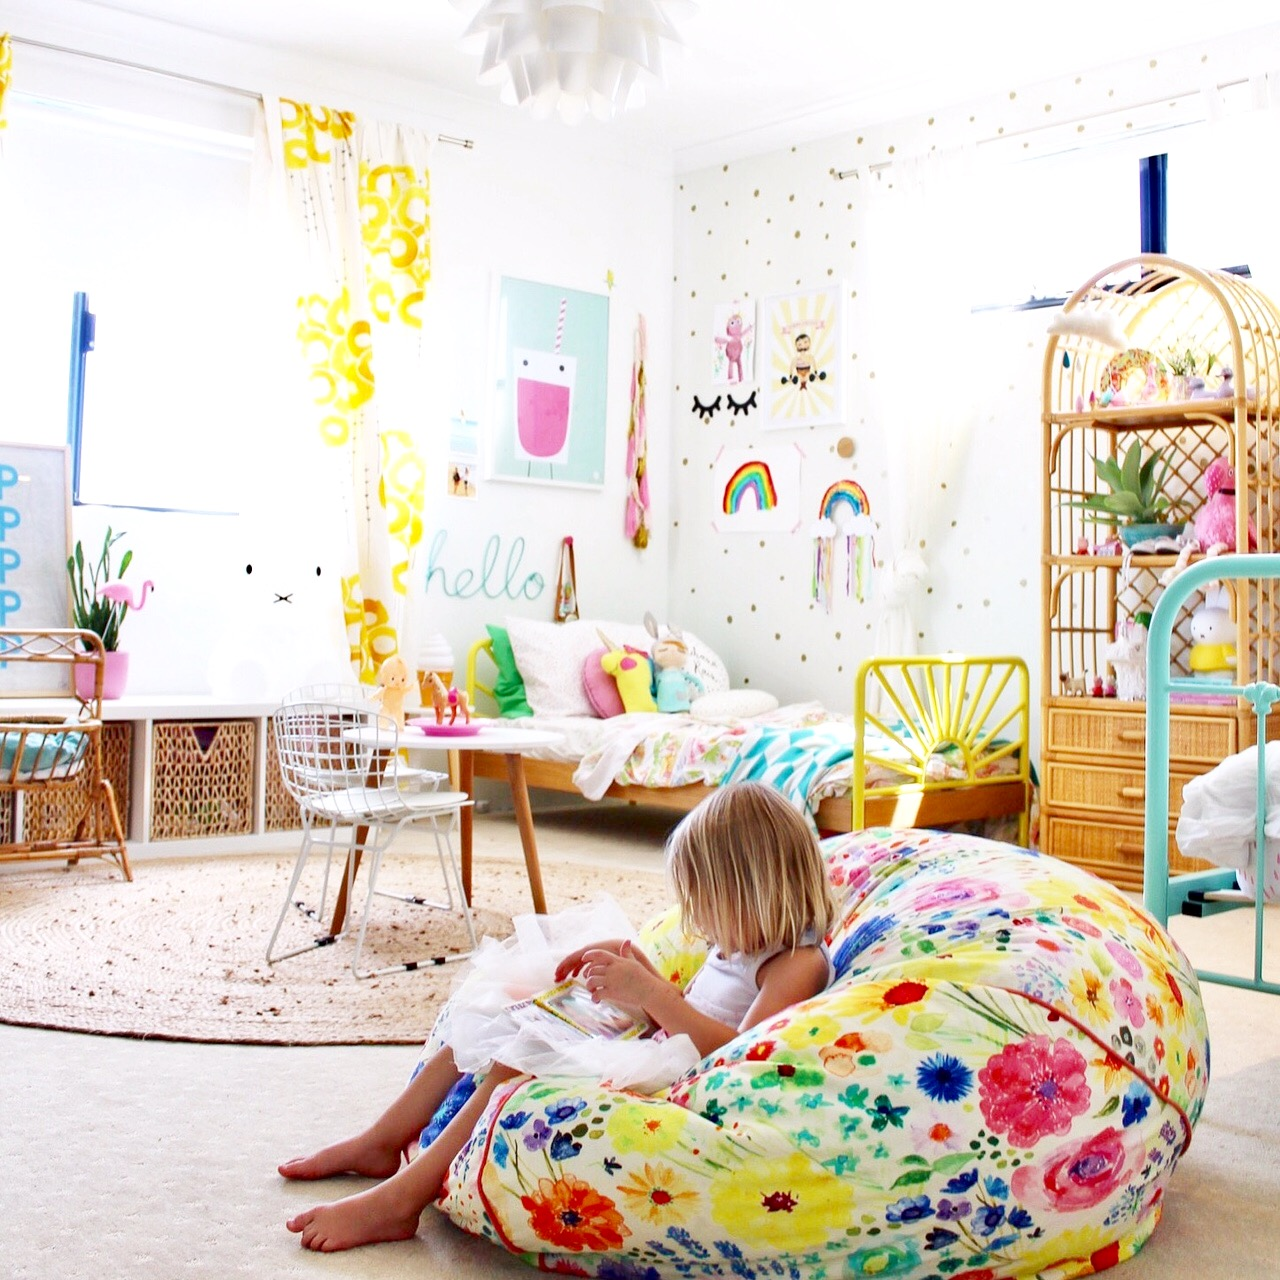 Kids bedroom ideas | girls room | colourful modern boho rooms for kids and toddlers | more on the blog